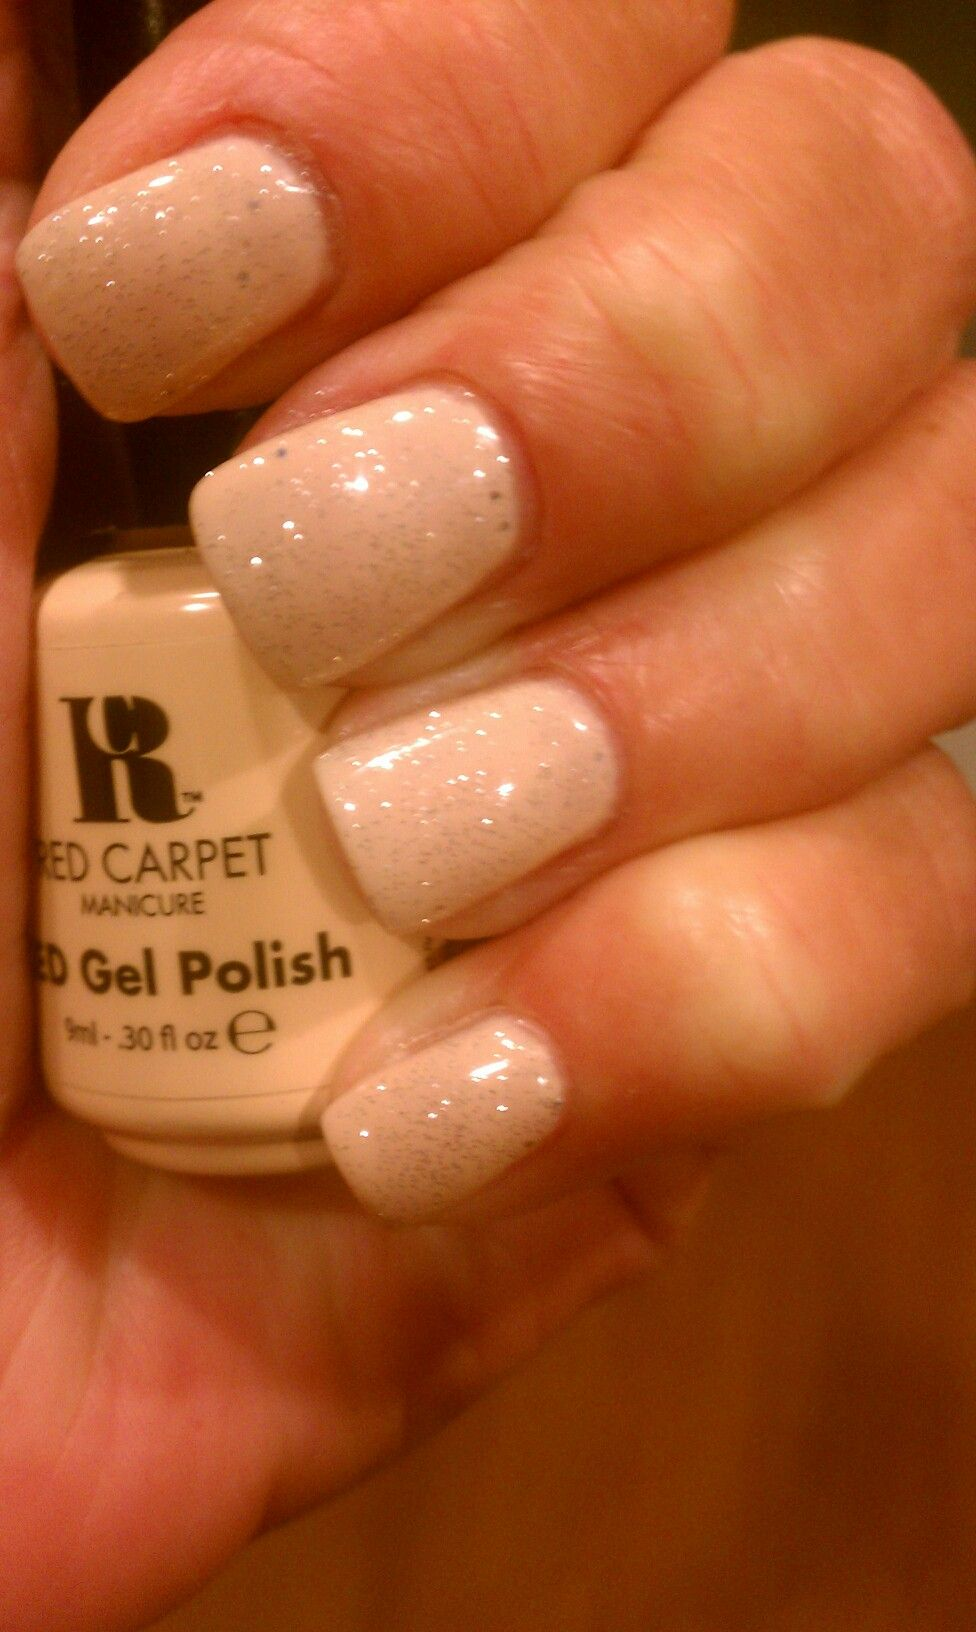 RCM Fake Bake & I Can't Believe It Nails, Gel manicure